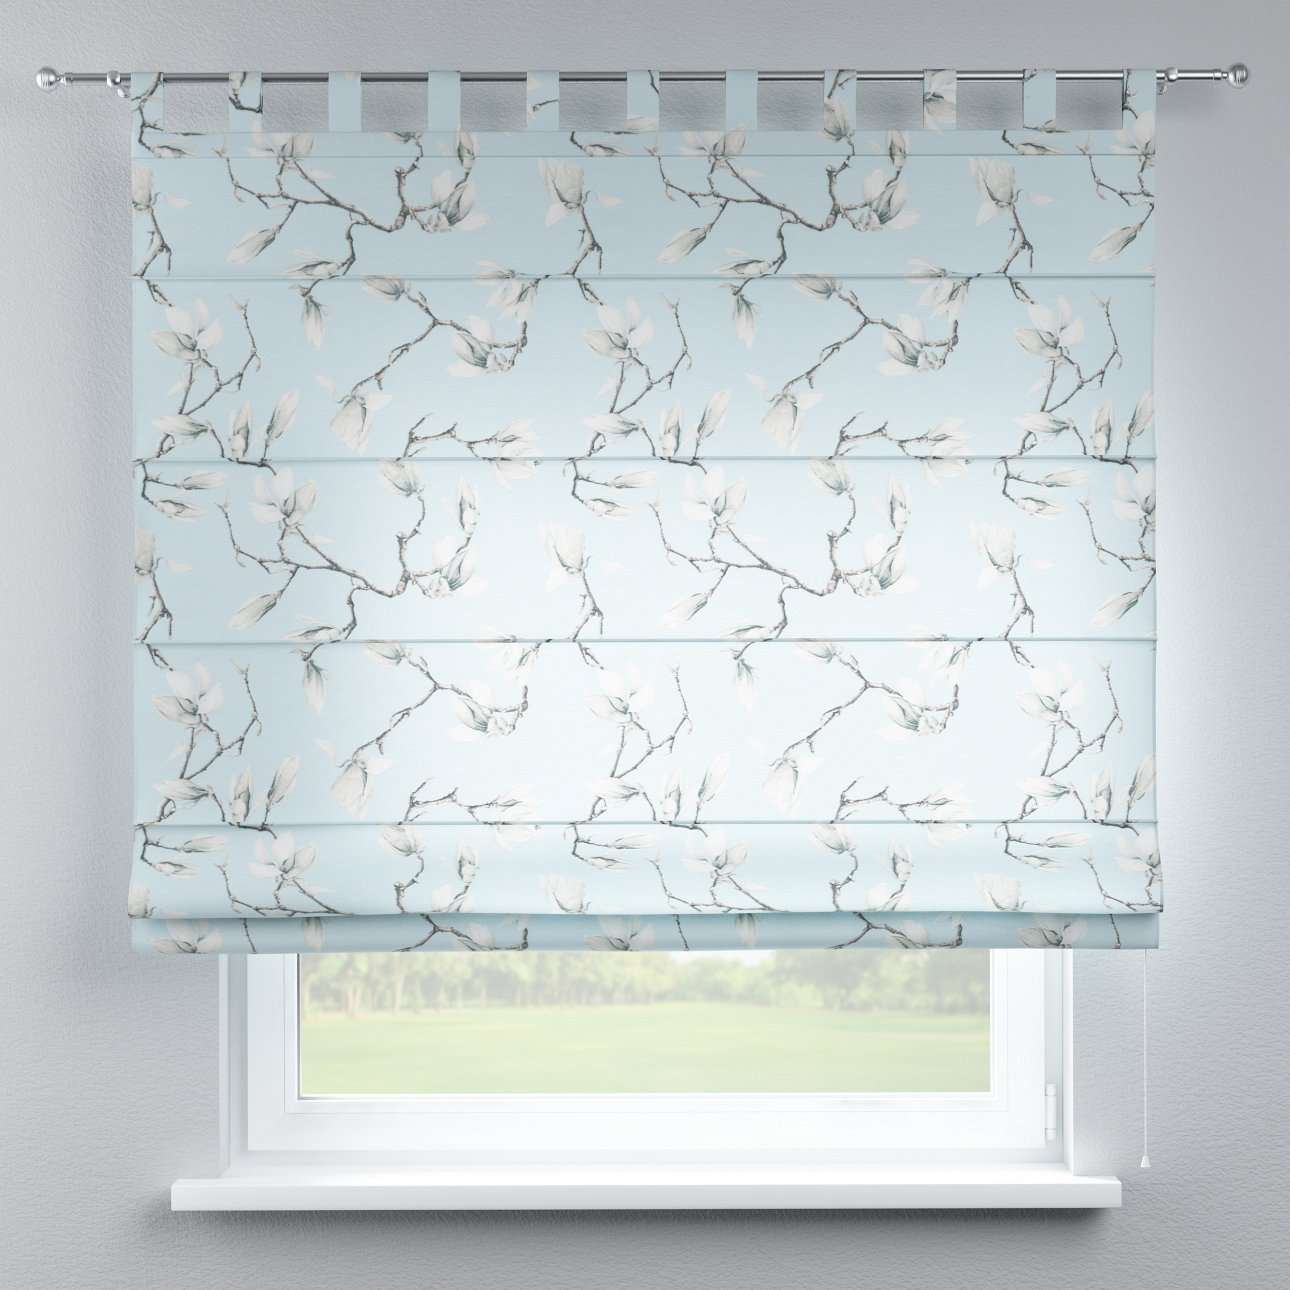 Verona tab top roman blind 80 x 170 cm (31.5 x 67 inch) in collection Flowers, fabric: 311-14